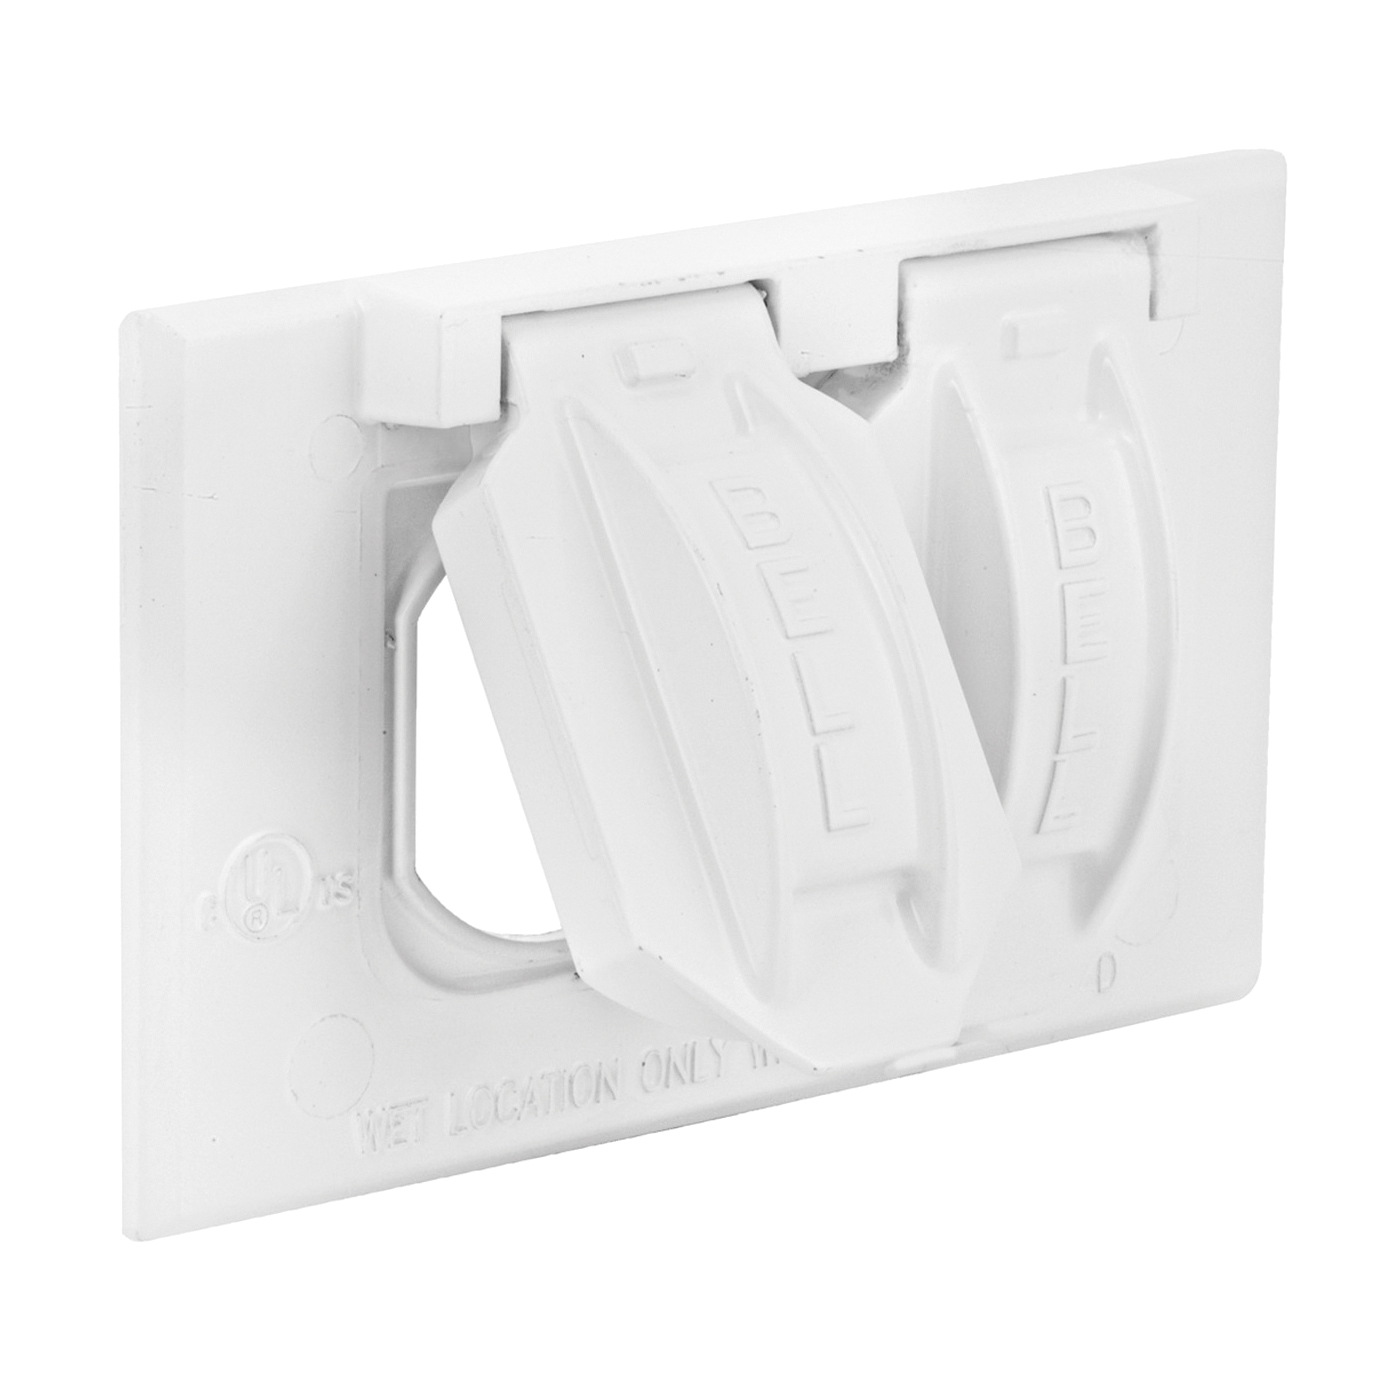 Picture of HUBBELL 5180-6 Cover, 2-13/16 in L, 4-9/16 in W, Metal, White, Powder-Coated